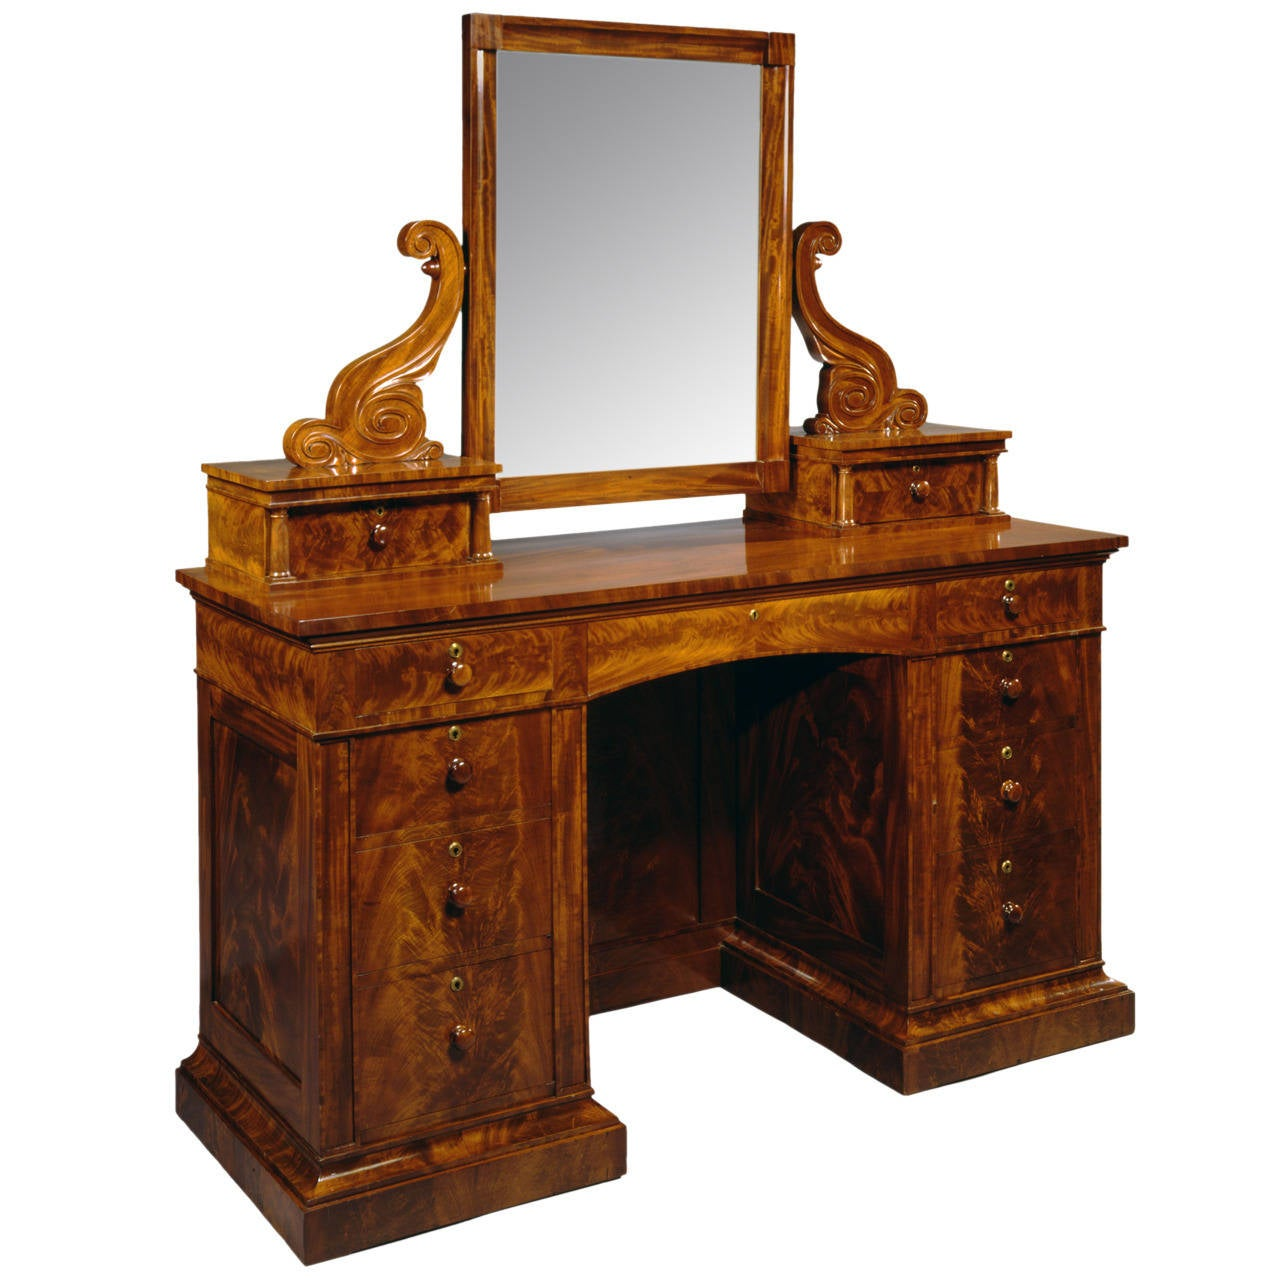 carved mahogany dressing bureau with attached mirror